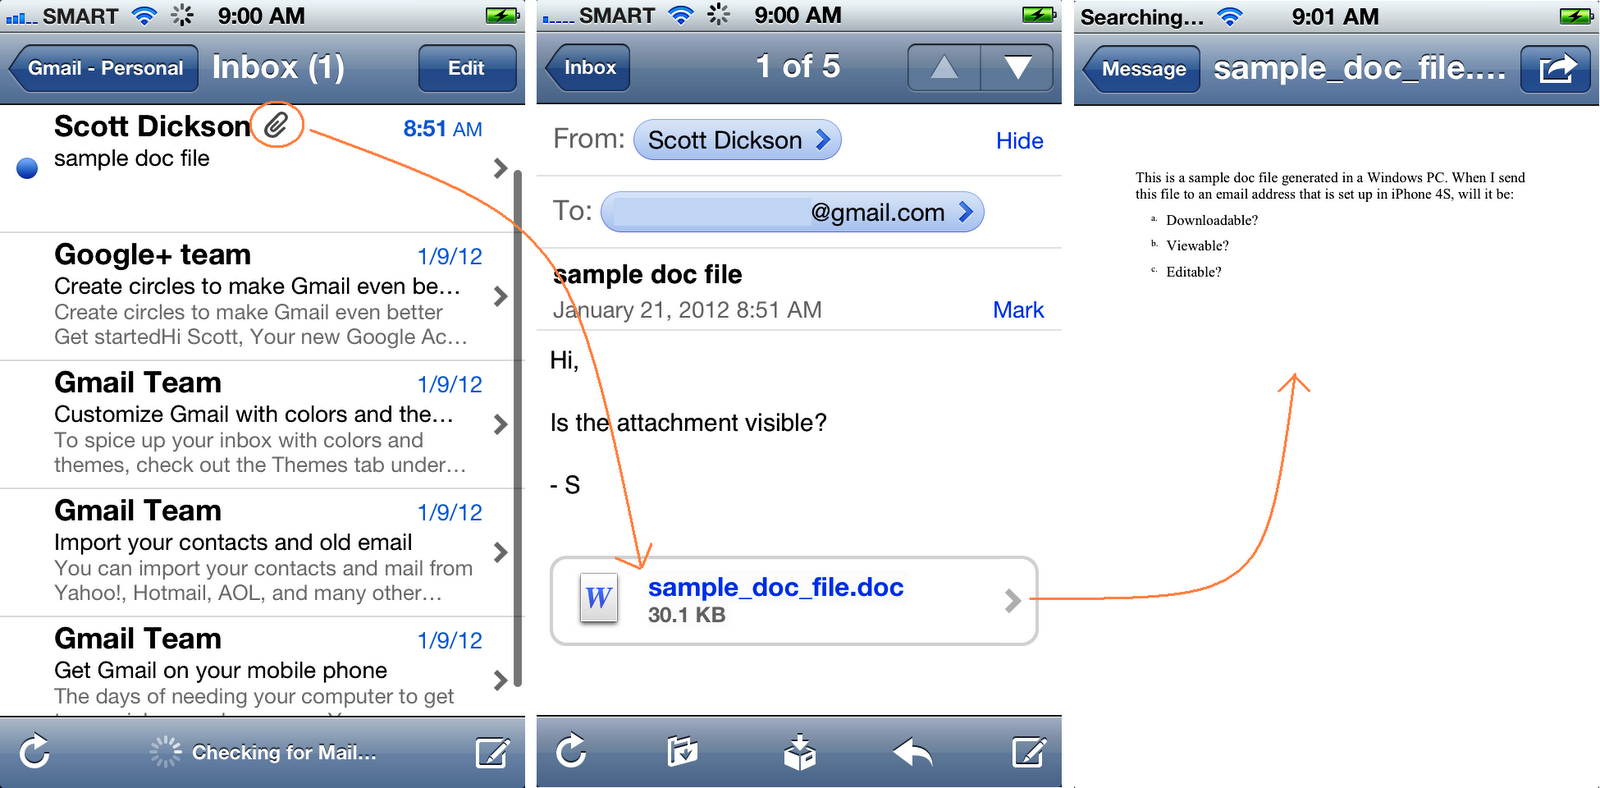 Saving email attachments on iPhone